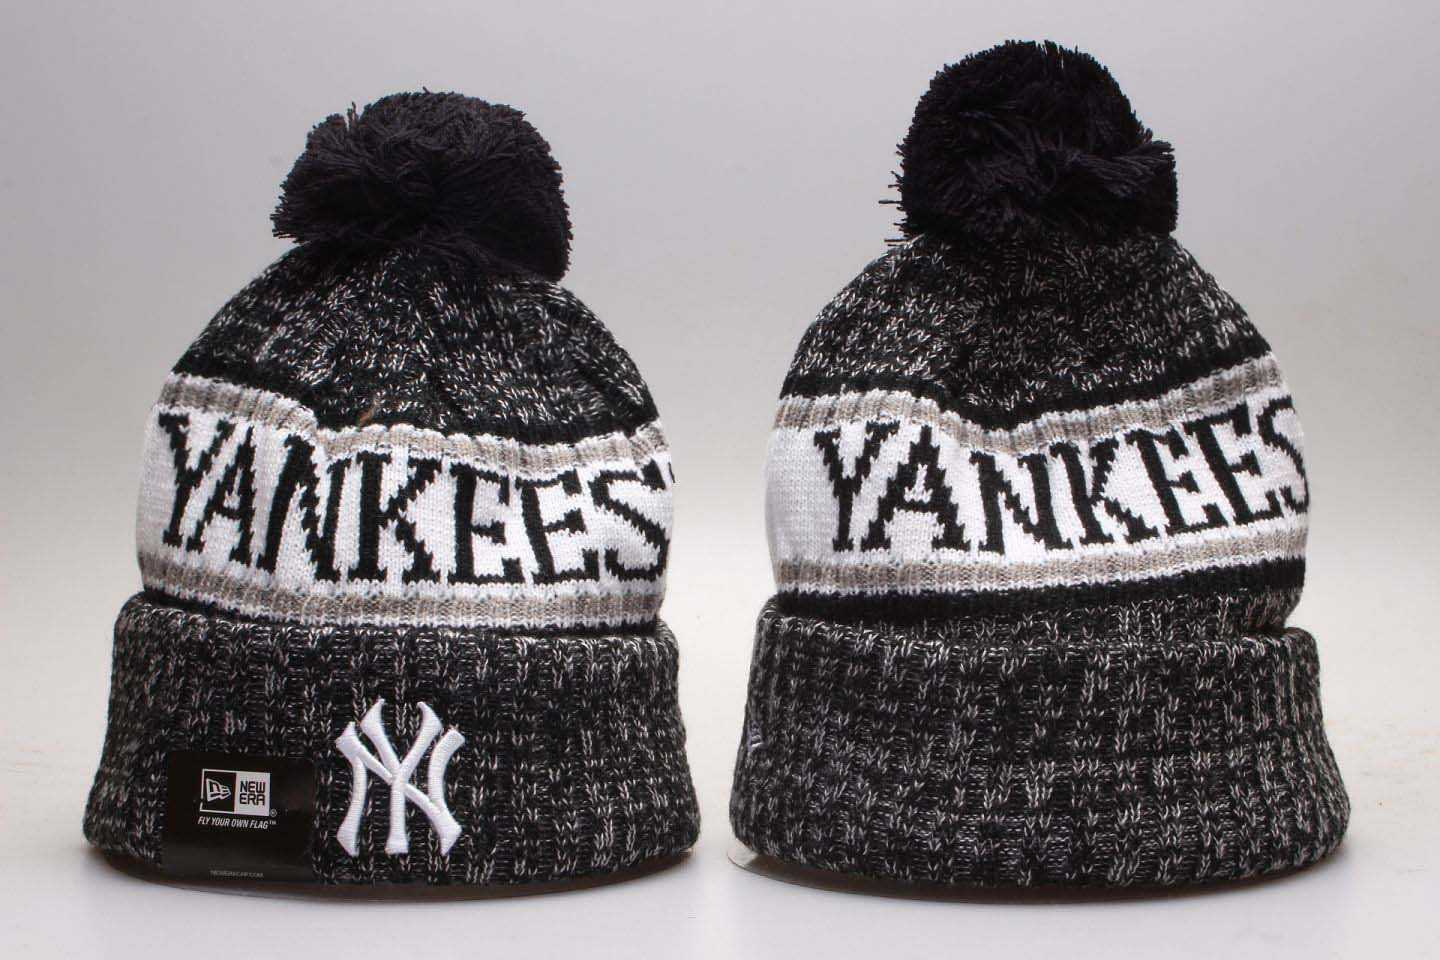 MLB MLB Beanie 8 Beanie hot hat